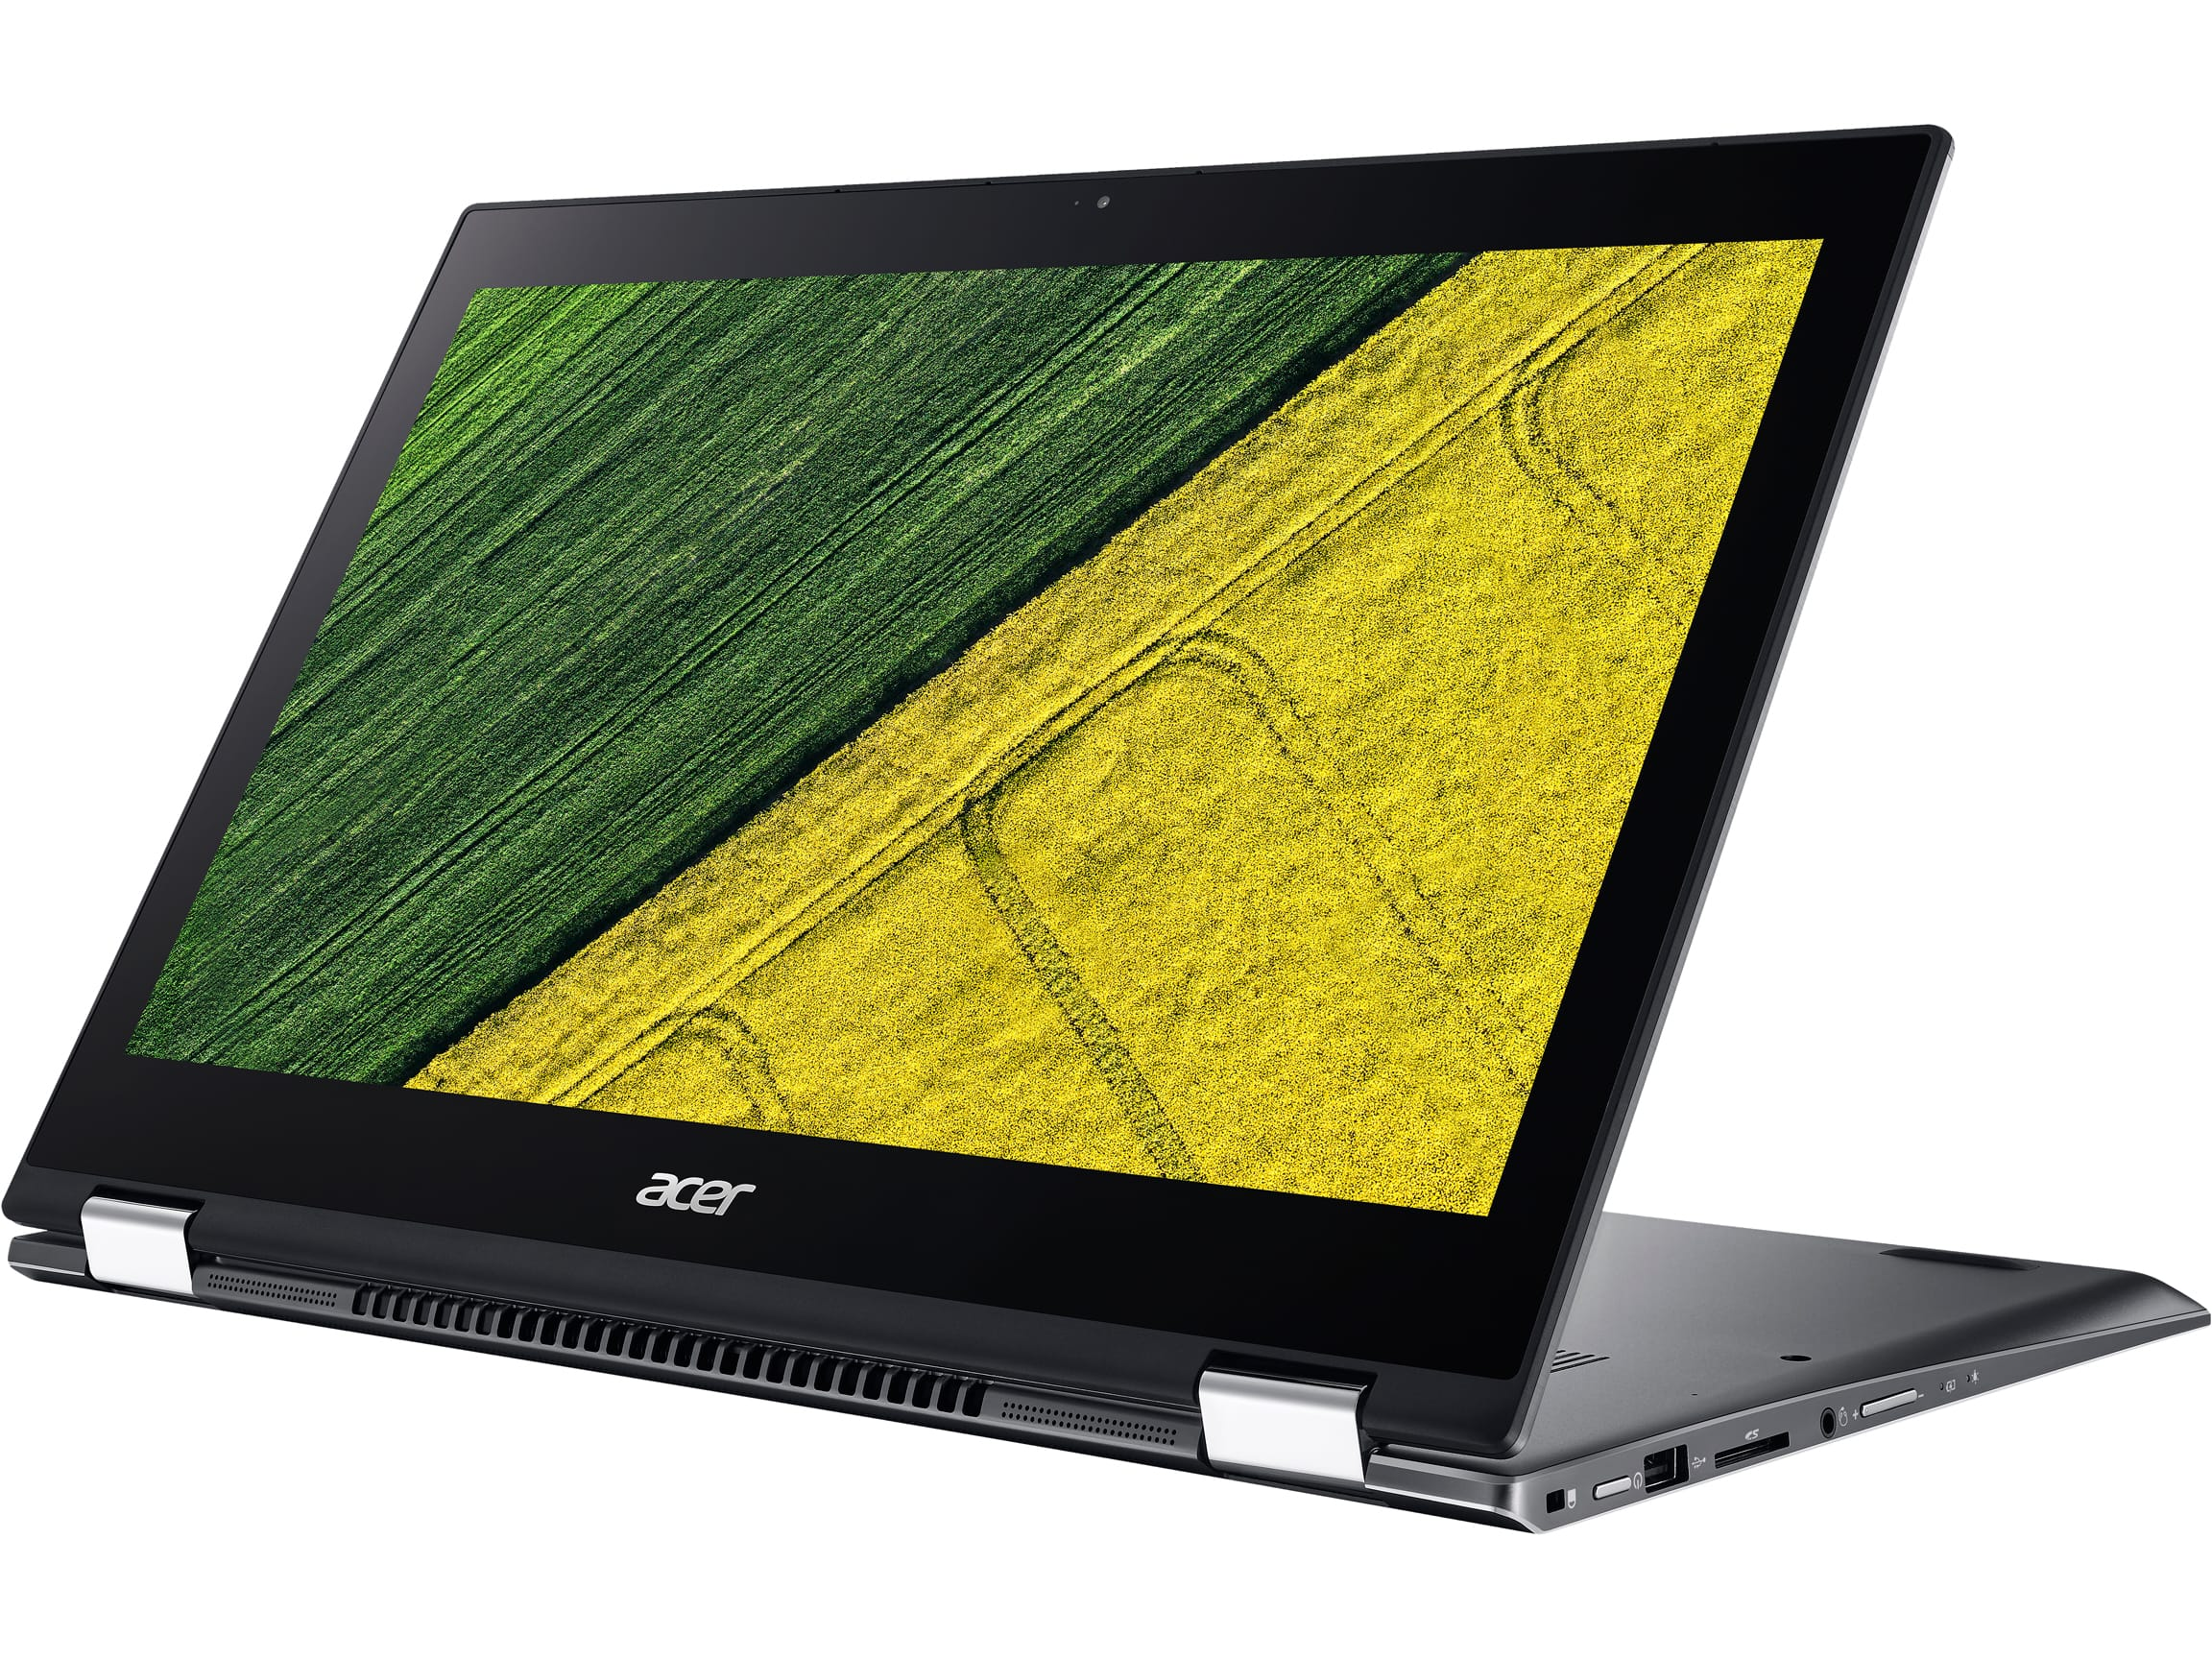 "Acer Spin 5 i7 8th Gen 8550U 8GB RAM 1TB HDD NVIDIA GeForce GTX 1050 15.6"" 2-in-1 Win10 $729.99 + Free Shipping"